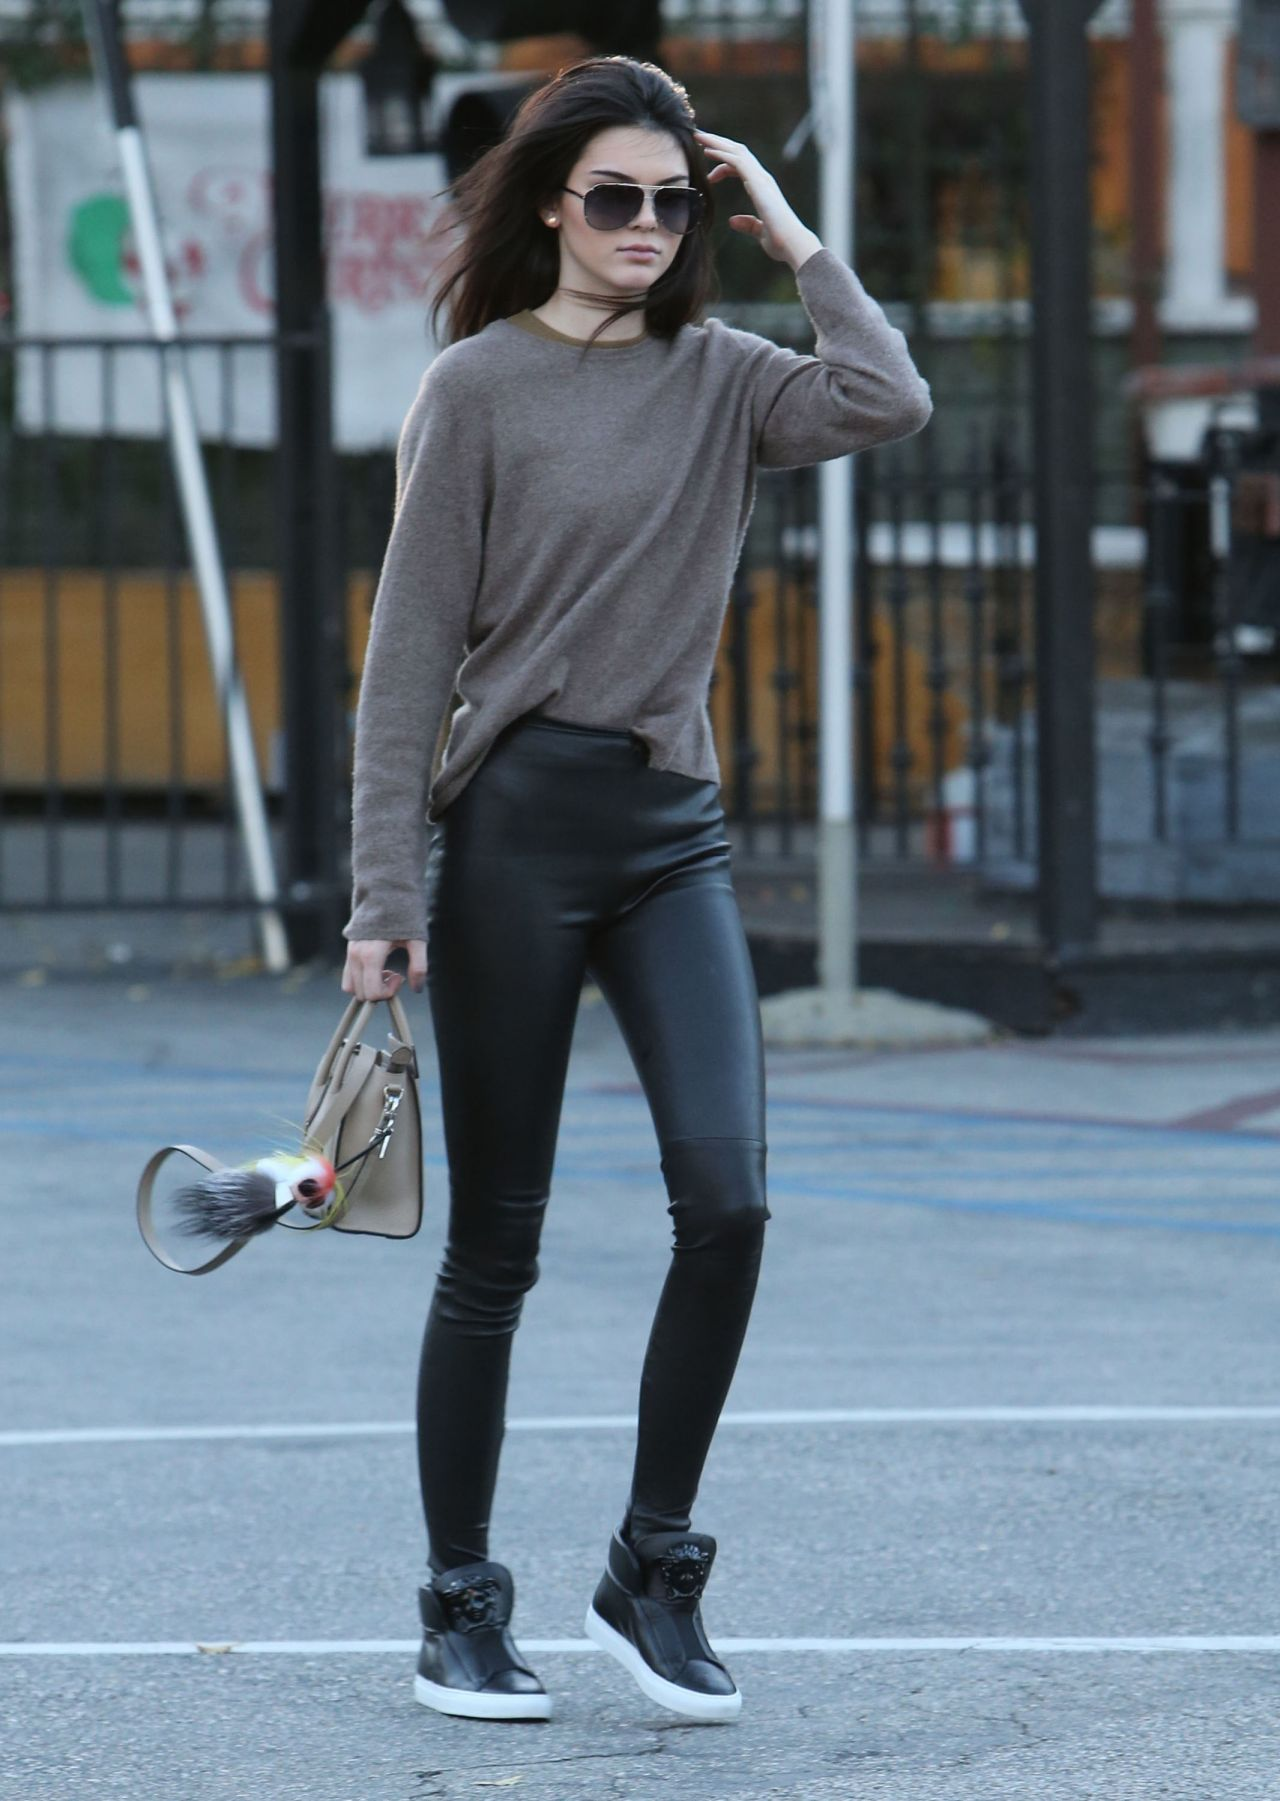 kendall-jenner-headed-to-a-mexican-restaurant-in-los-angeles-dec.-2014_1